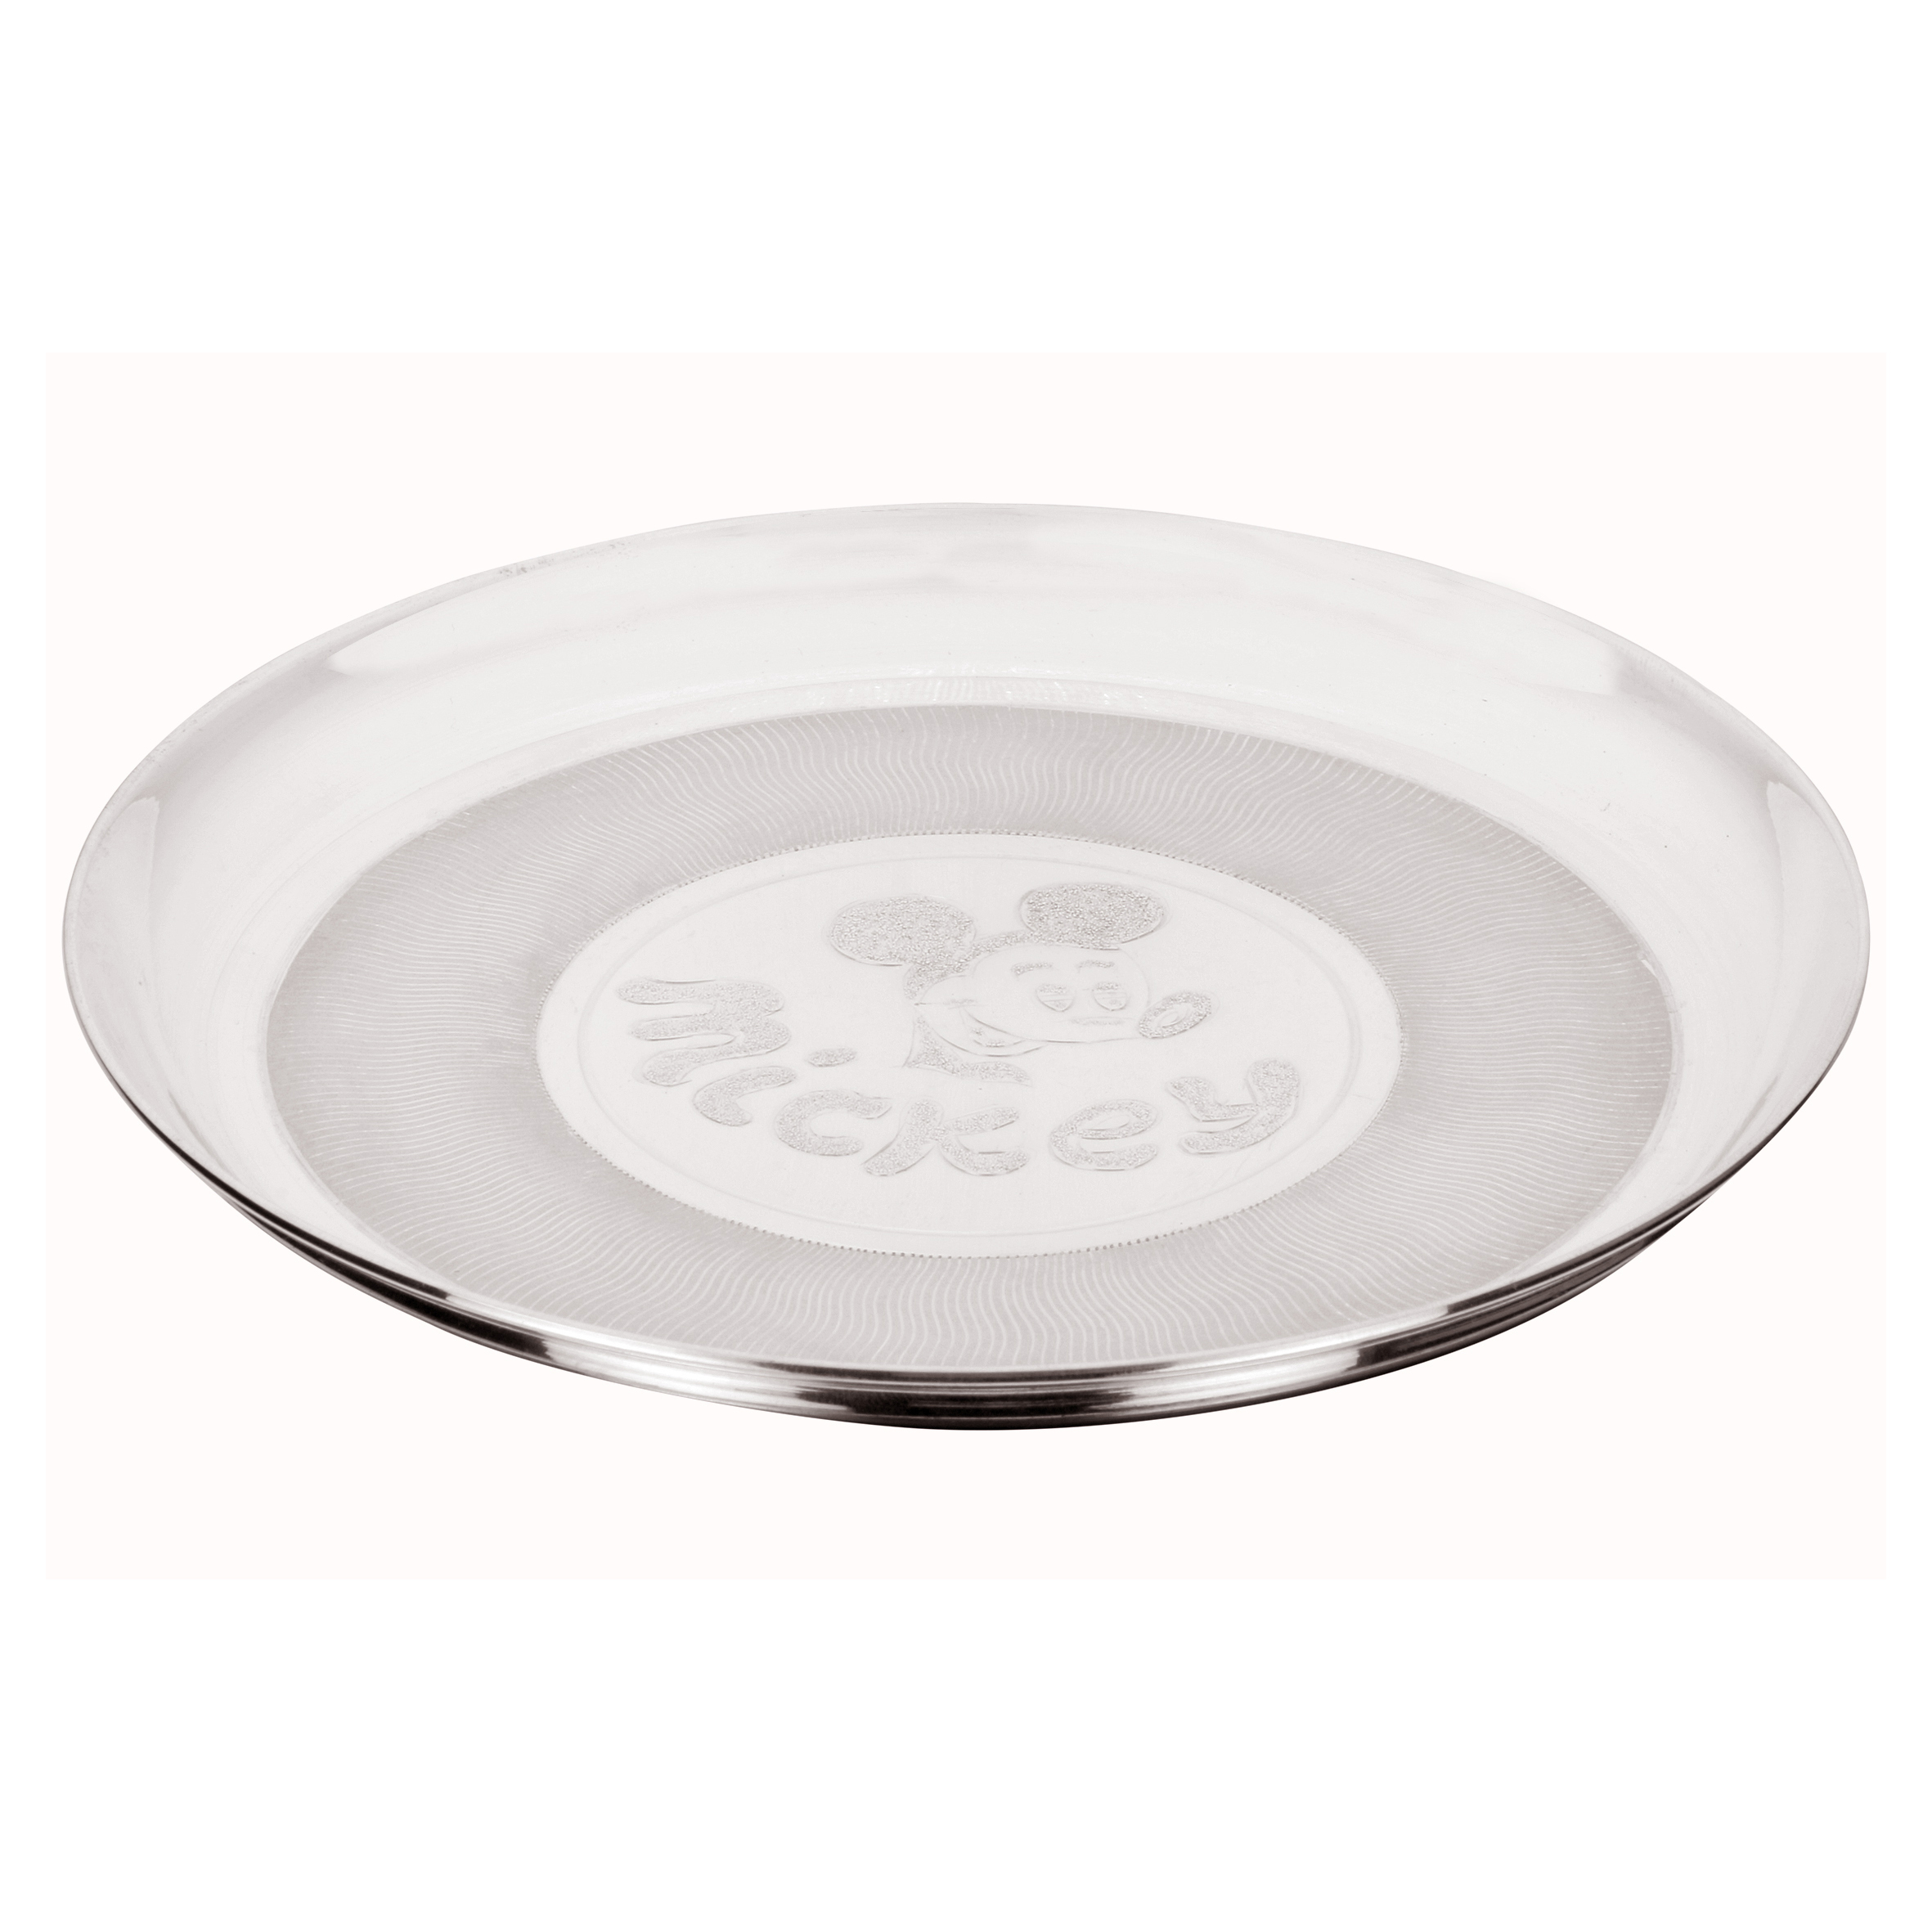 Osasbazaar Sterling Silver Baby Plate - Mickey Mouse Design - Main